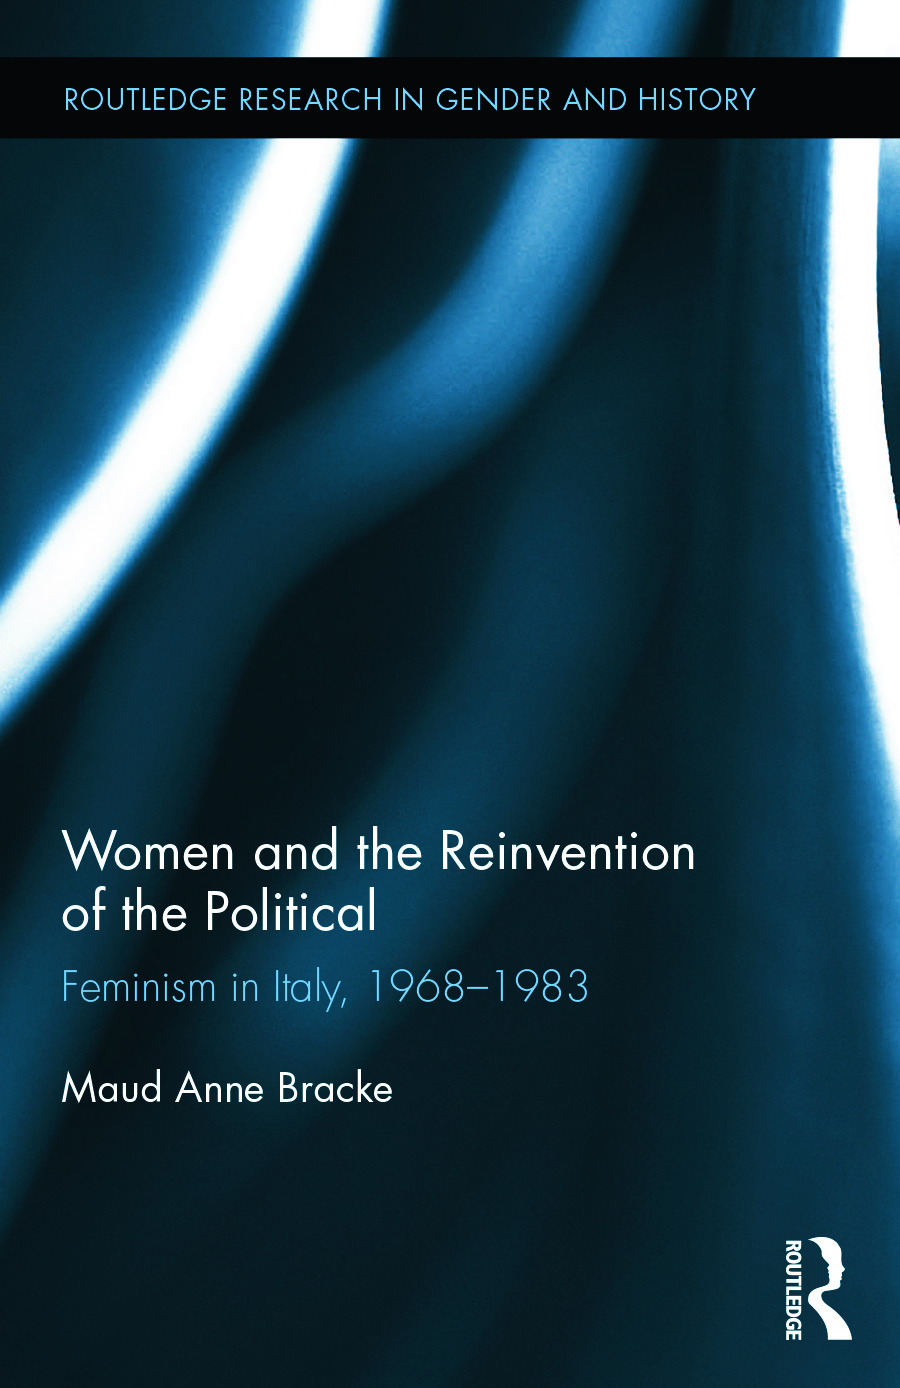 Women and the Reinvention of the Political: Feminism in Italy, 1968-1983 book cover